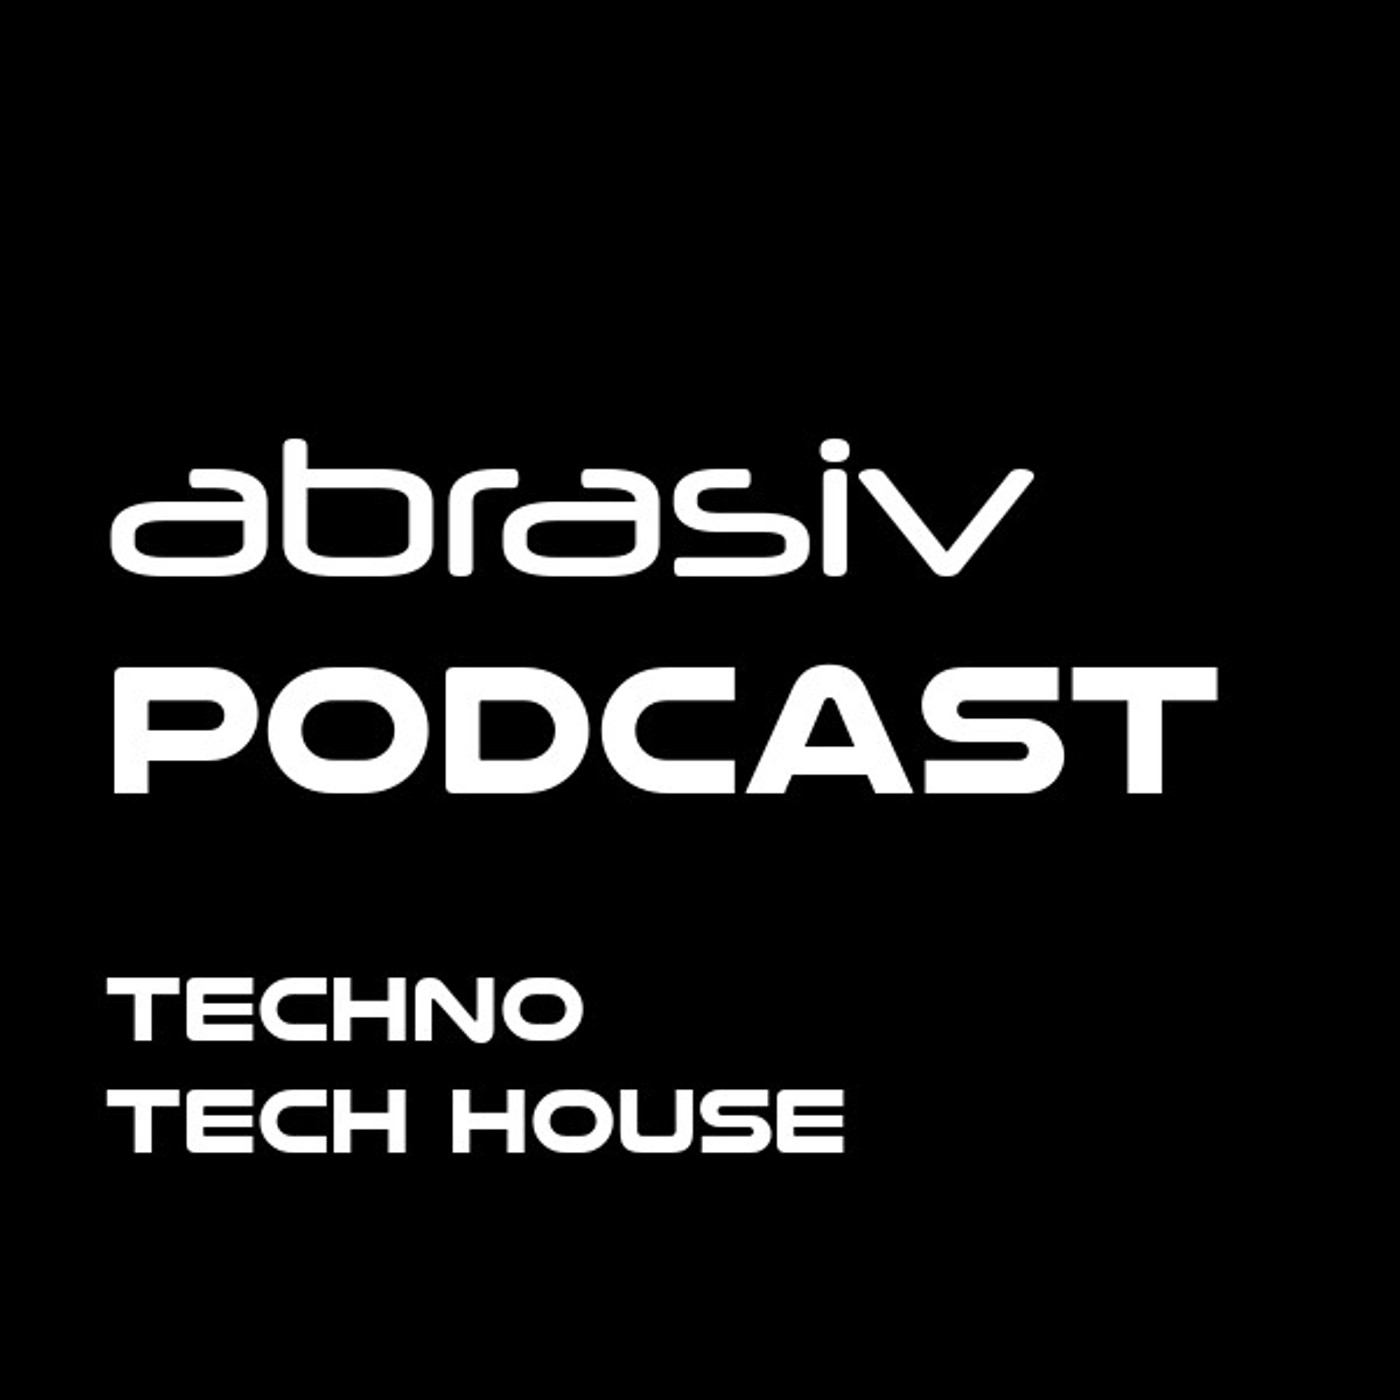 Abrasiv Podcast (New Techno and Tech House)